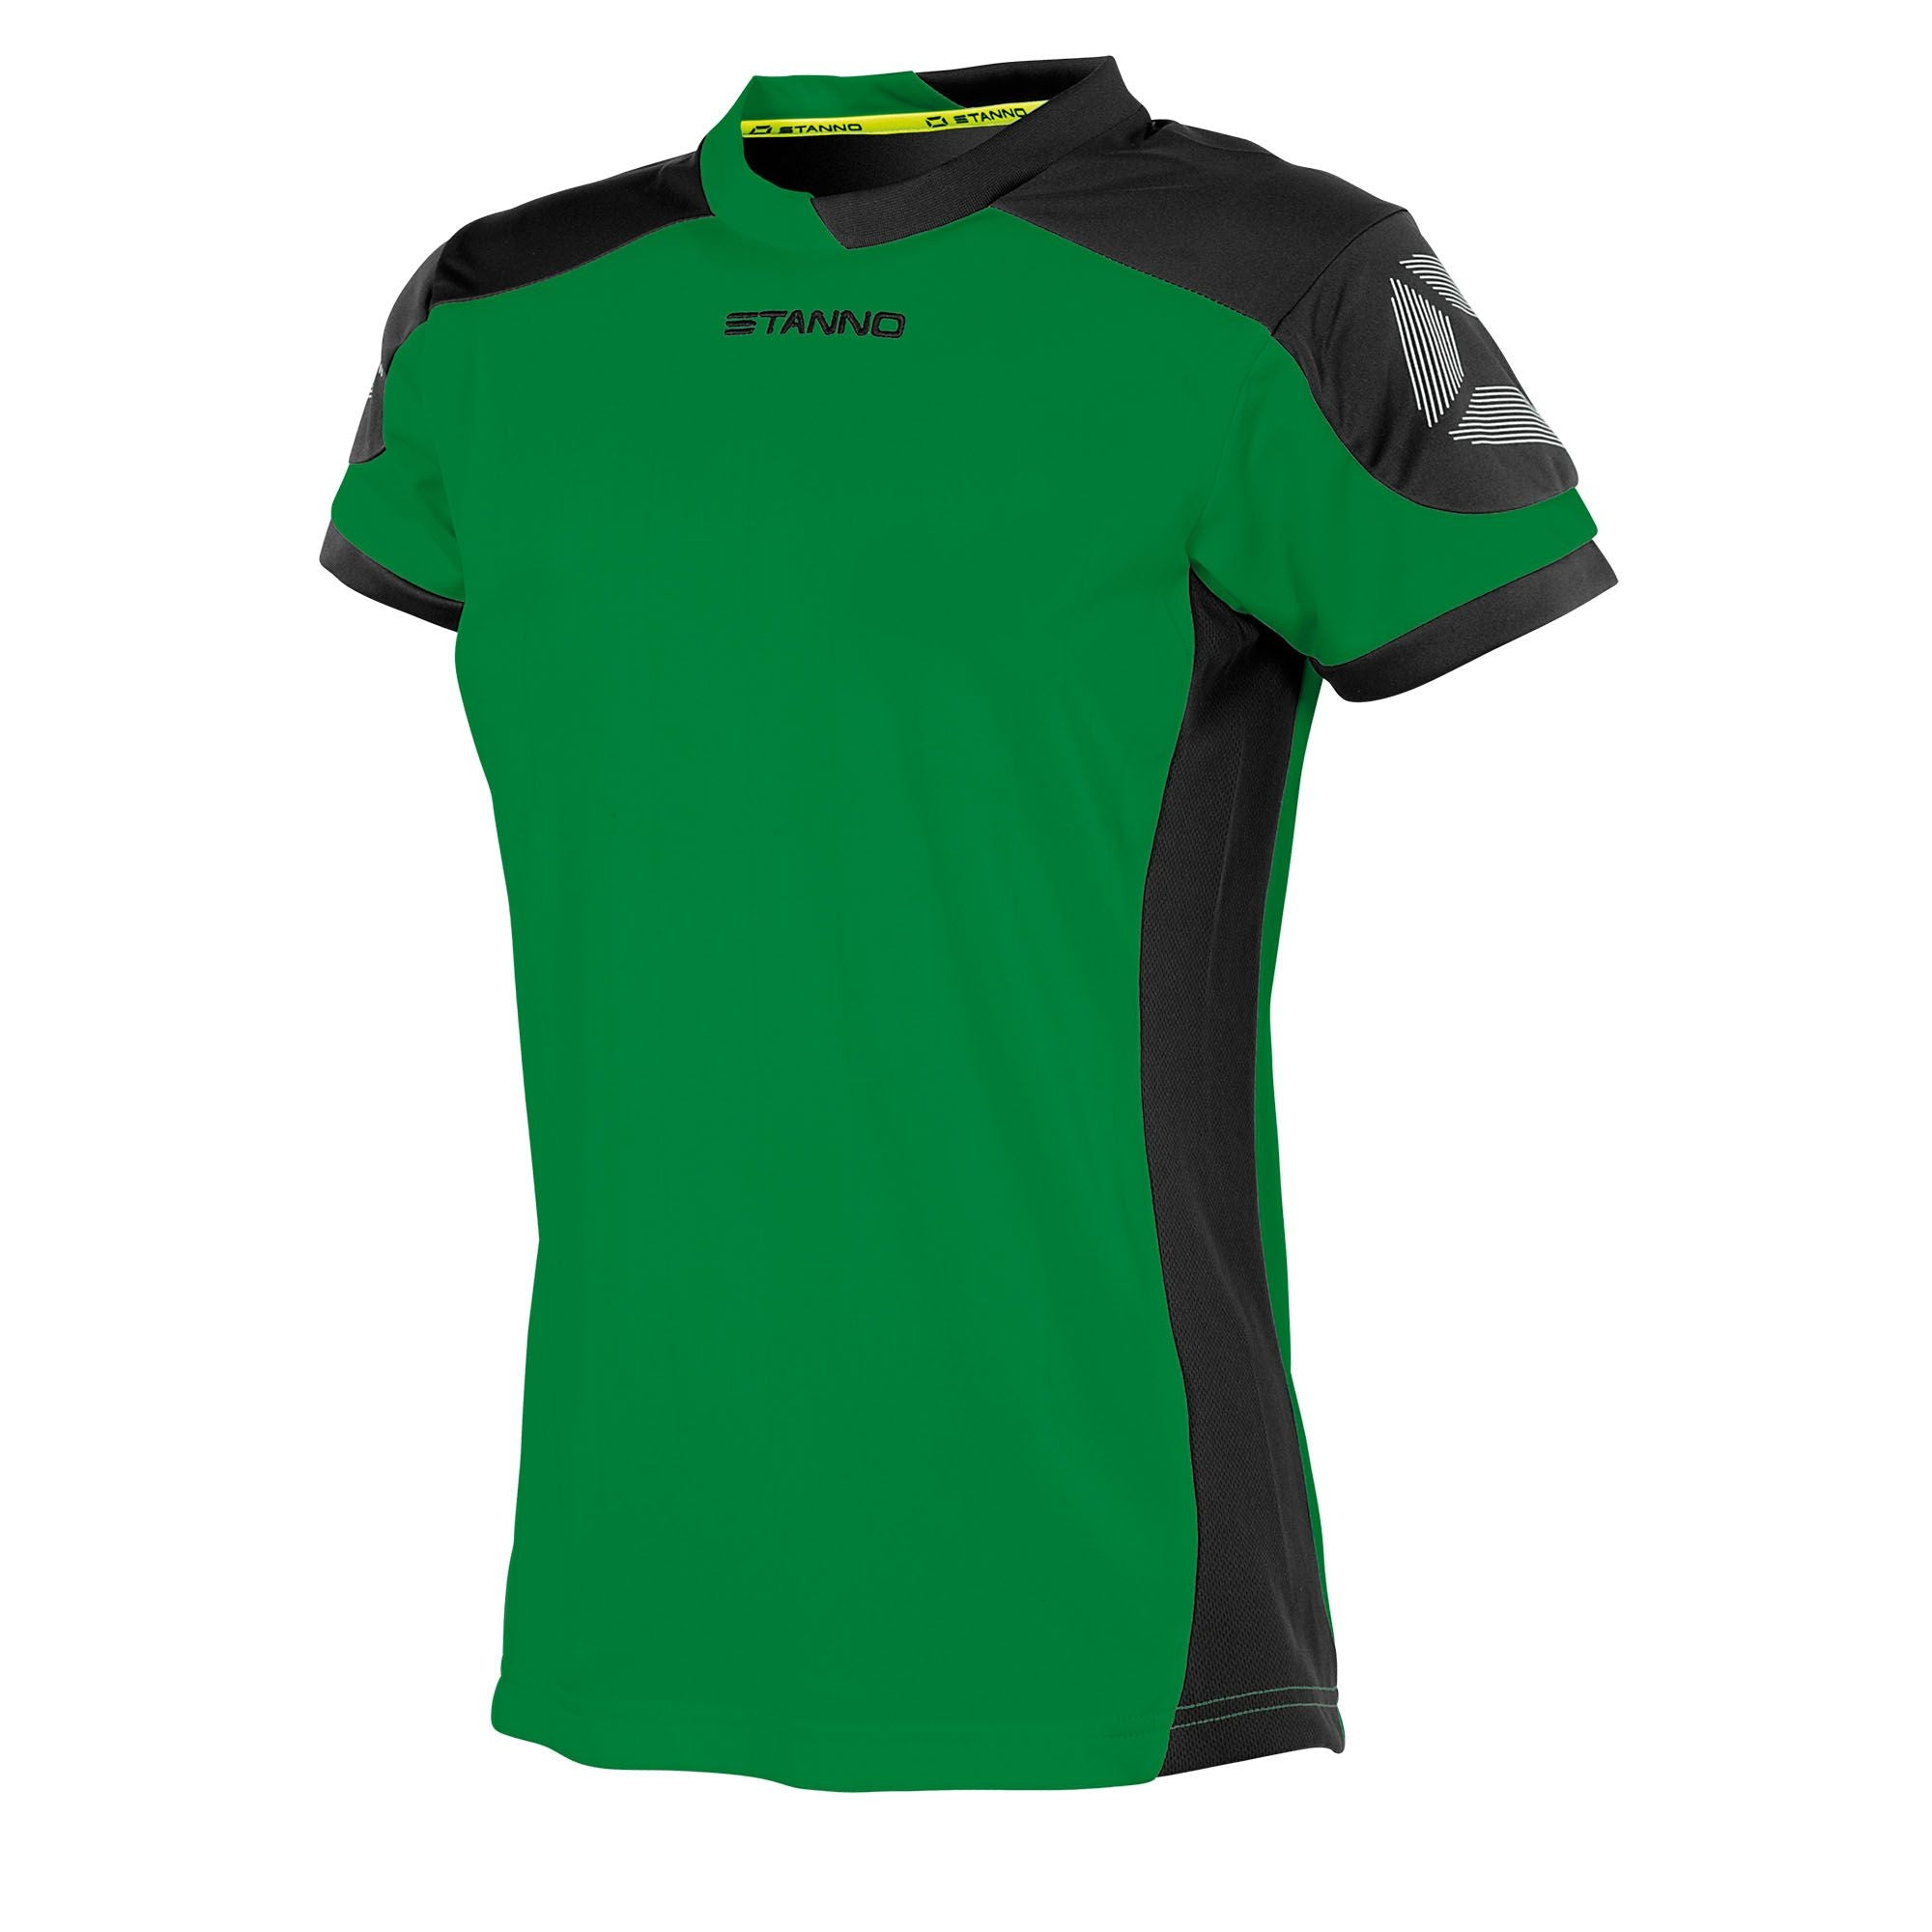 Stanno Campione ladies fit short sleeved shirt in green with contrast black sleeves and side panels